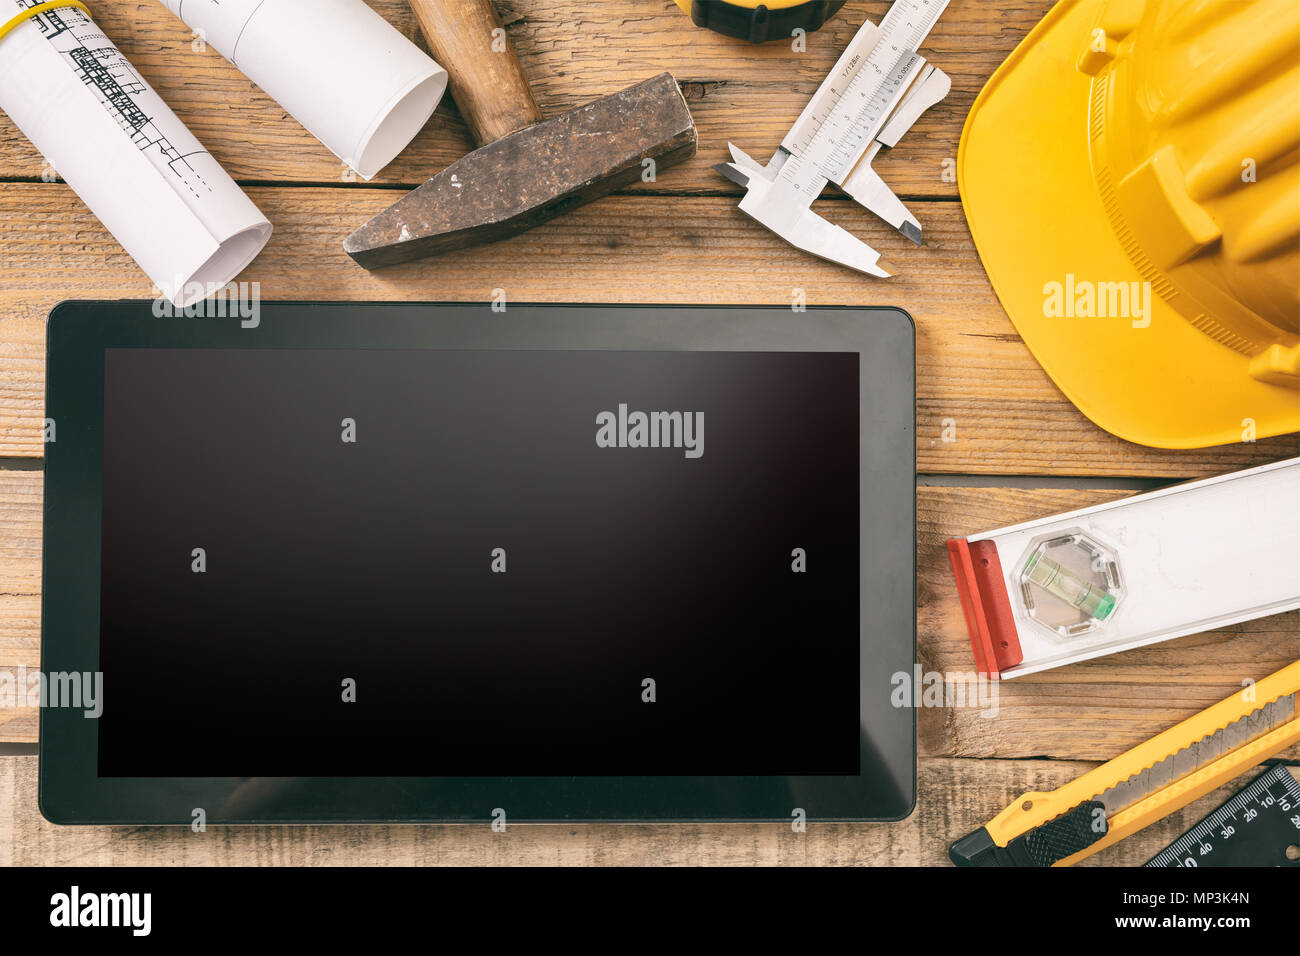 Architect workplace and technology. Tablet with black blank screen, project construction blueprints and engineering tools on wooden desk, copy space,  - Stock Image